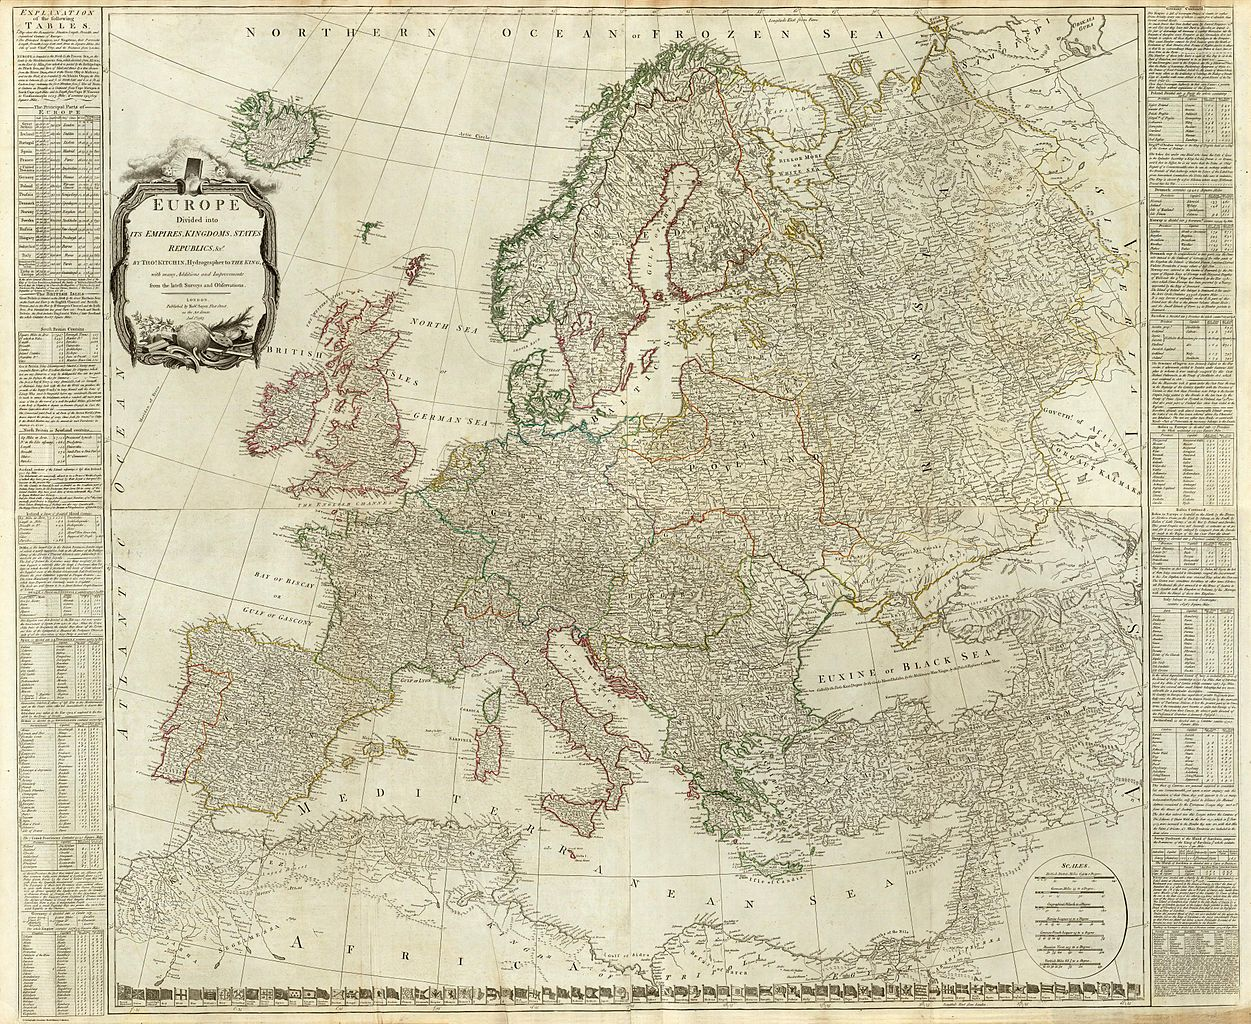 Composite of Europe divided into its empires kingdoms states republics by Thomas Kitchin commons.wikimedia.org